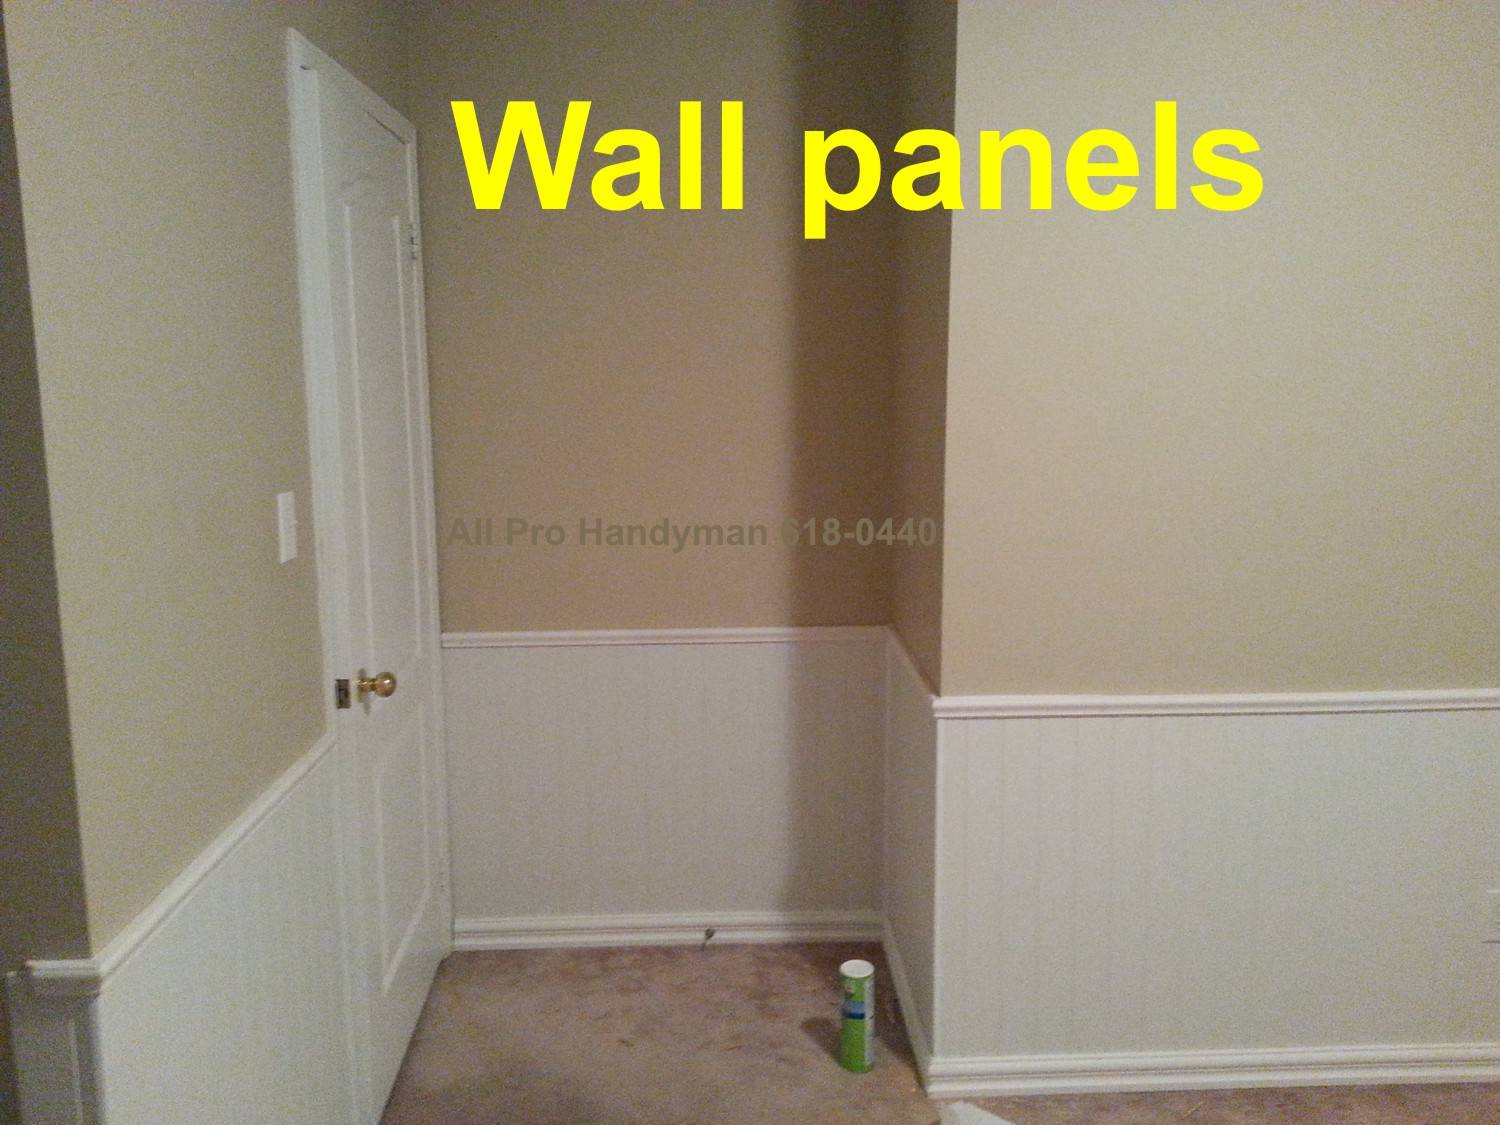 Wall panel install